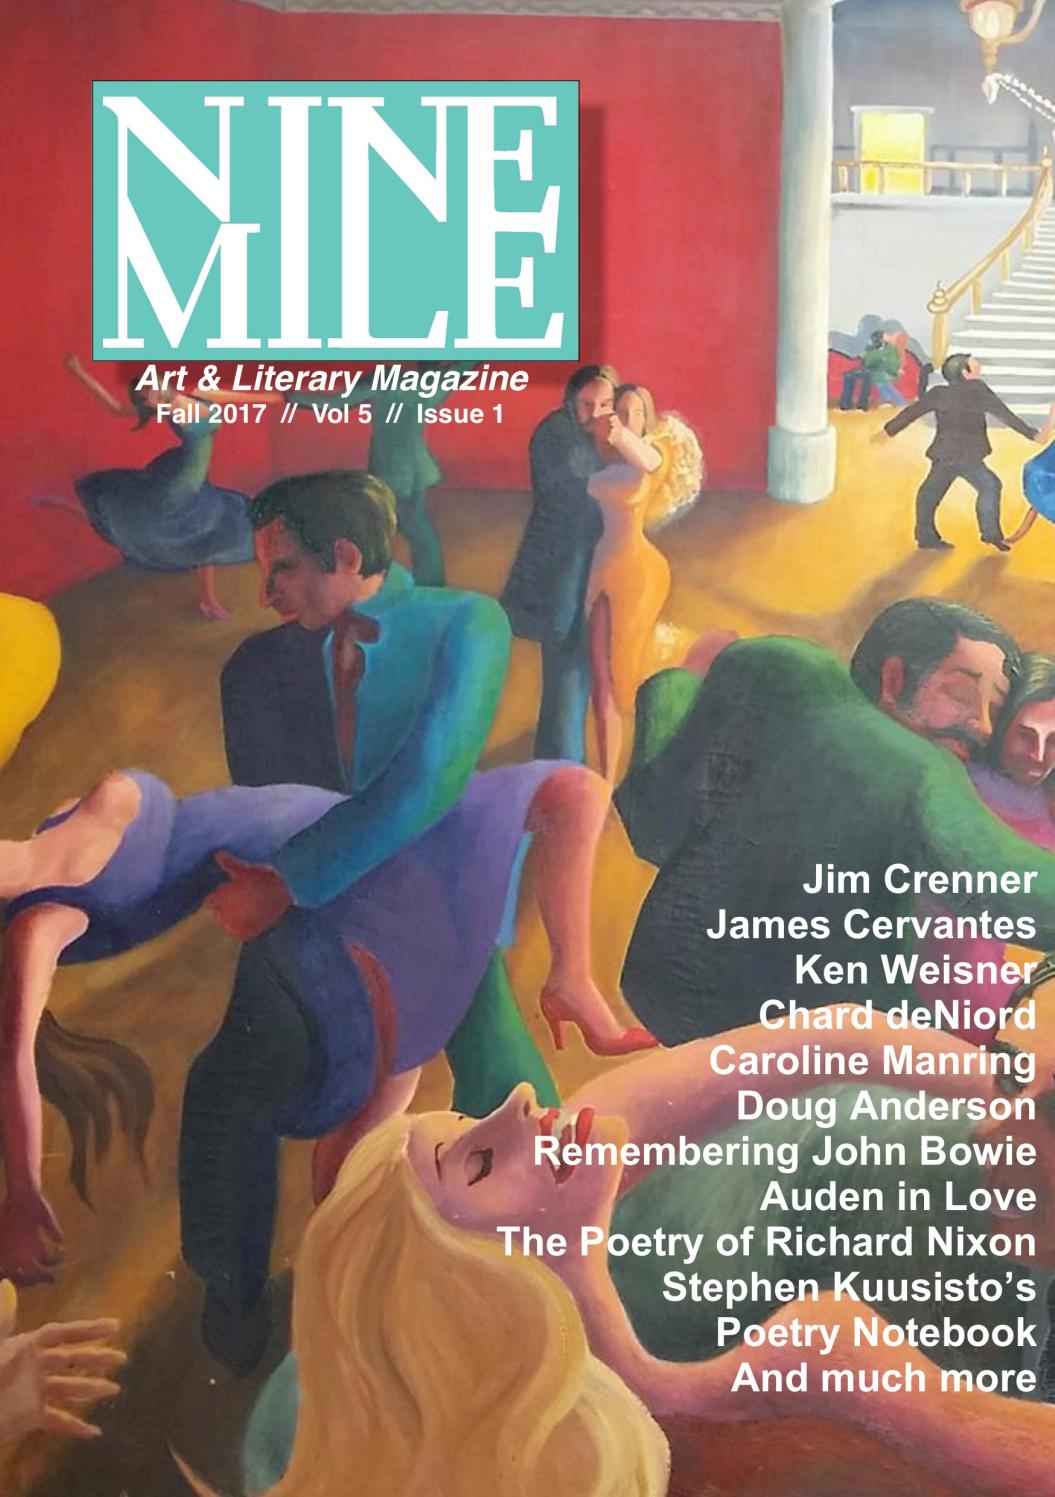 Nine Mile Magazine Fall 2017 by Bob Herz - issuu